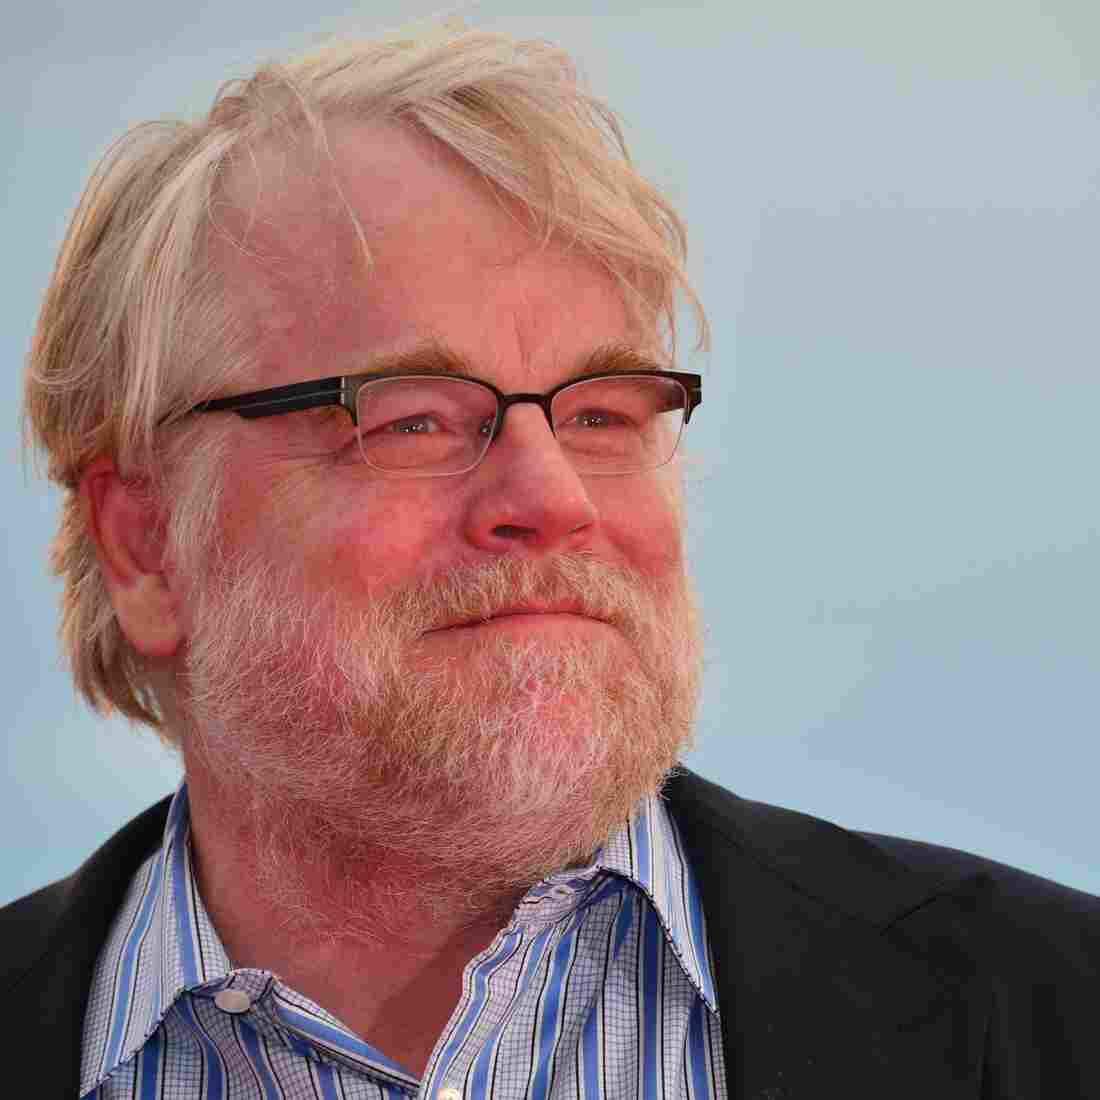 Philip Seymour Hoffman at a screening of The Master, for which he was nominated for an Academy Award, during the 2012 Venice Film Festival.